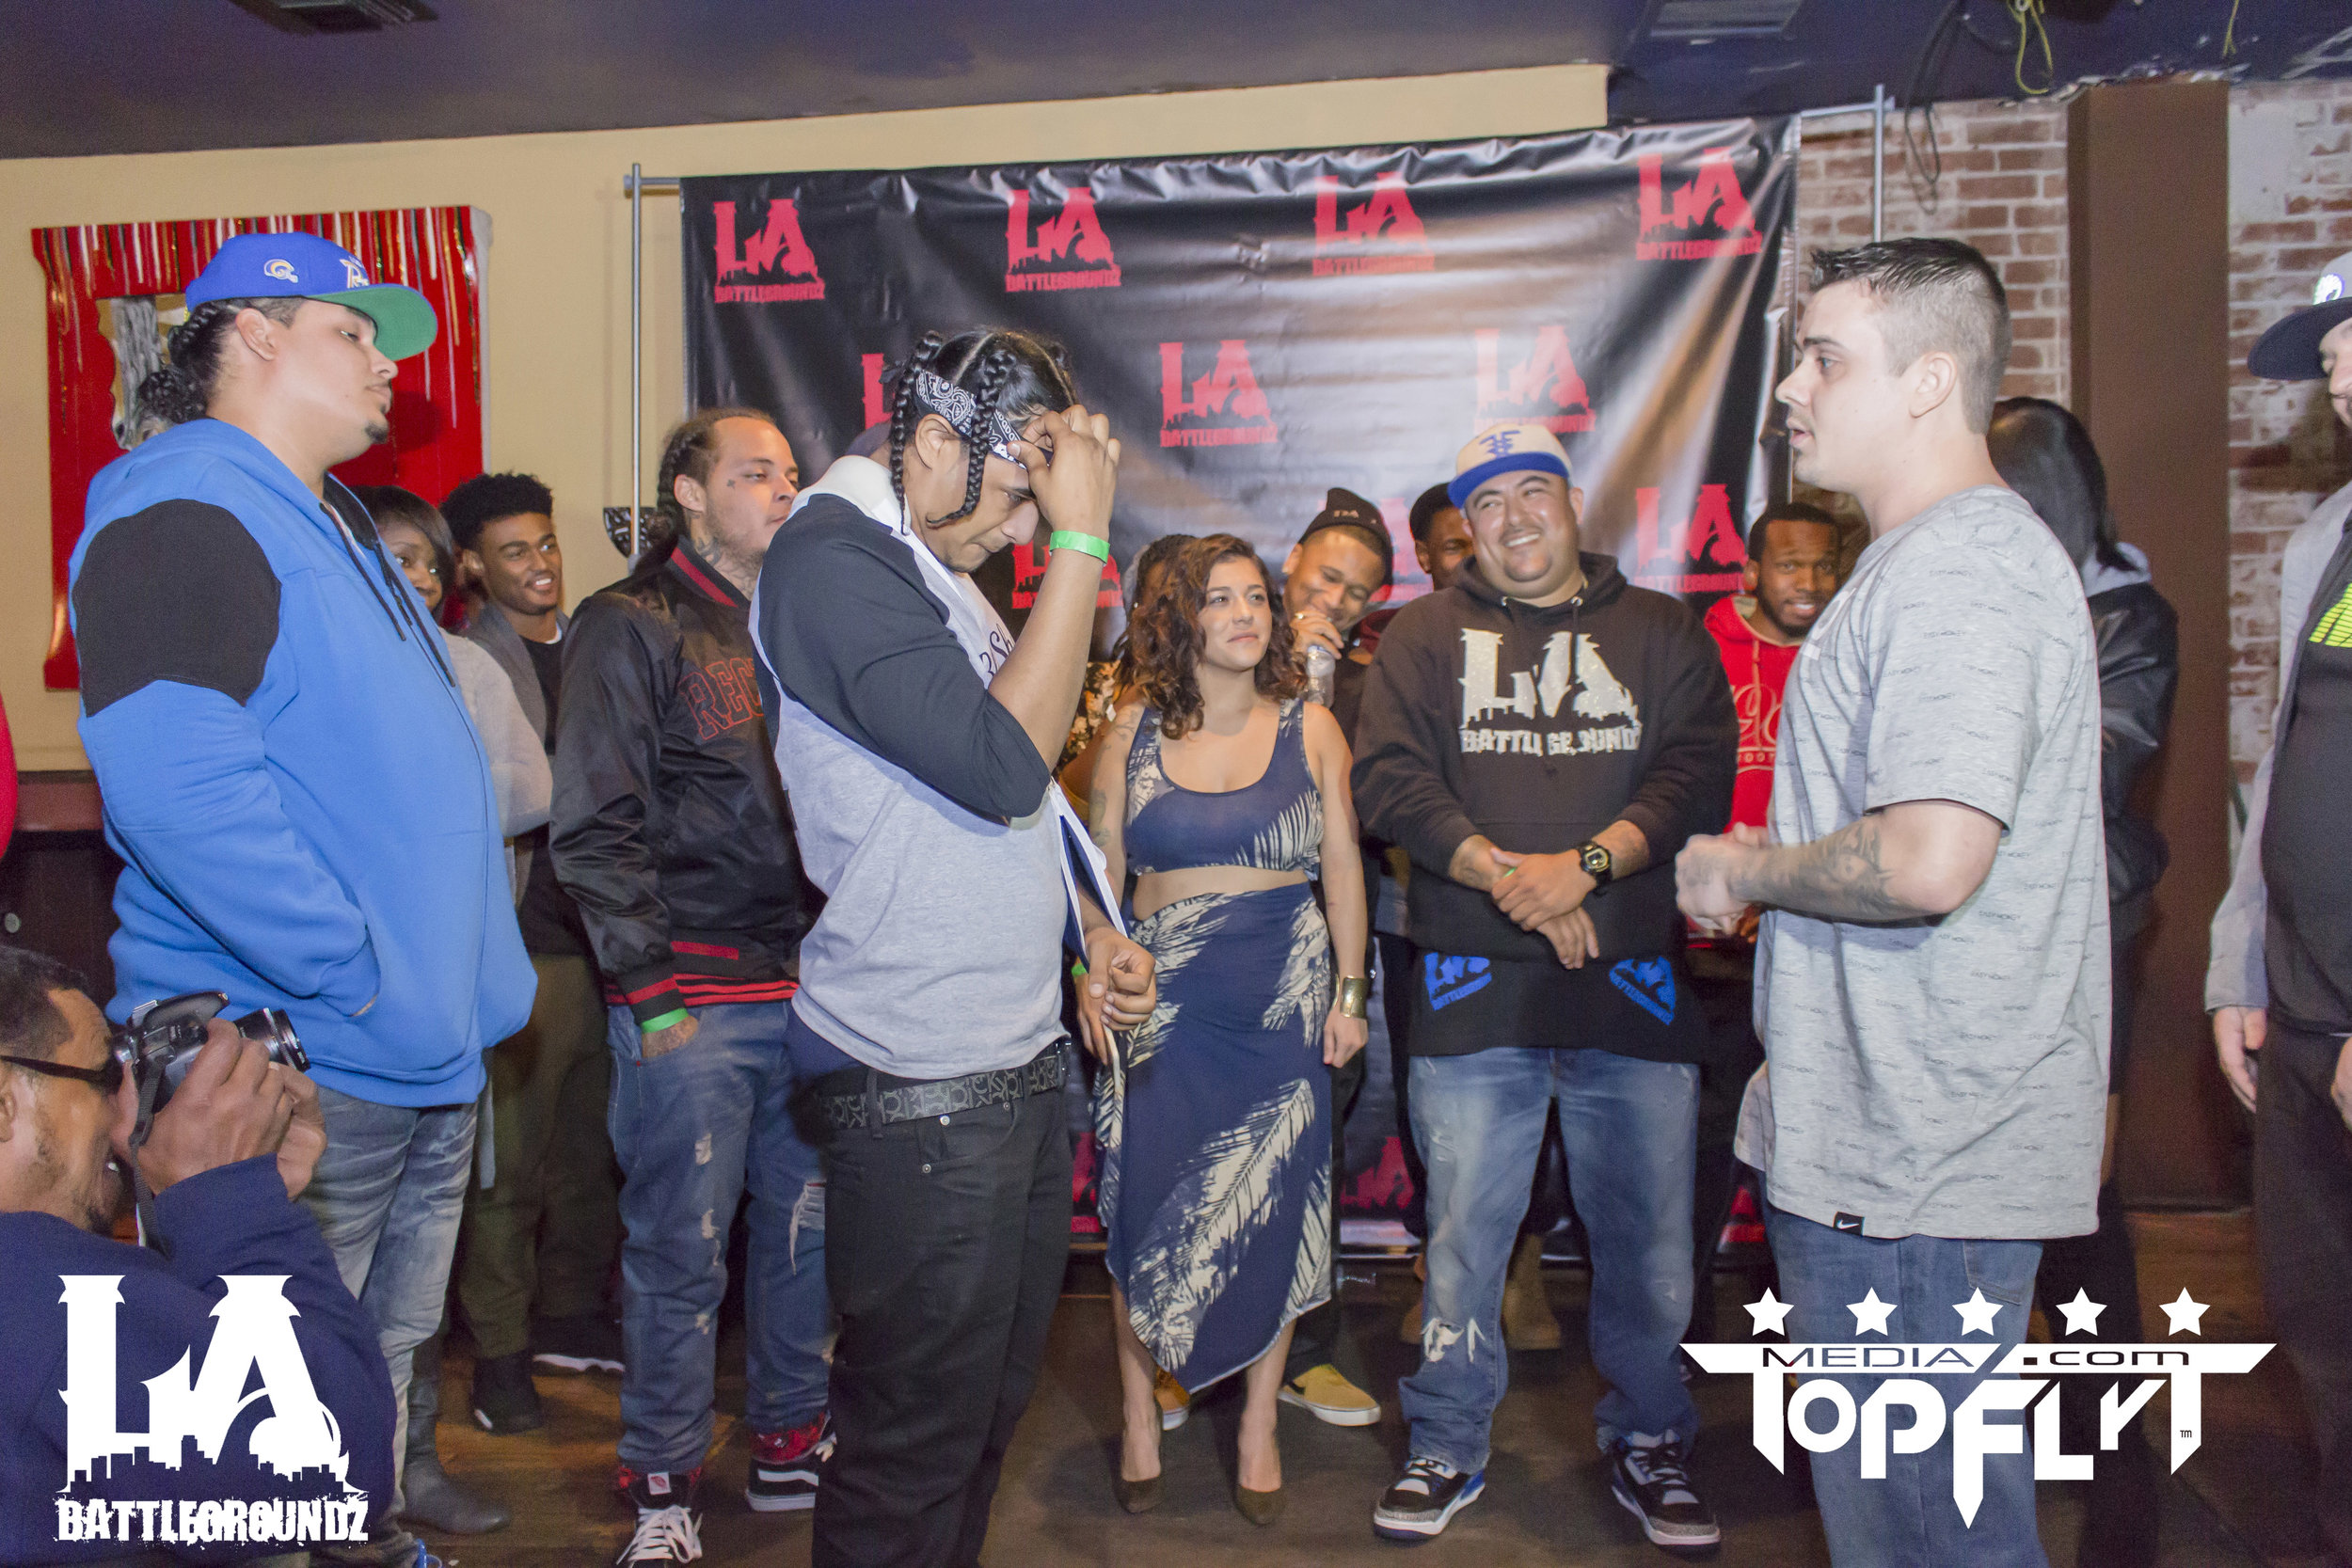 LA Battlegroundz - Decembarfest - The Christening_74.jpg